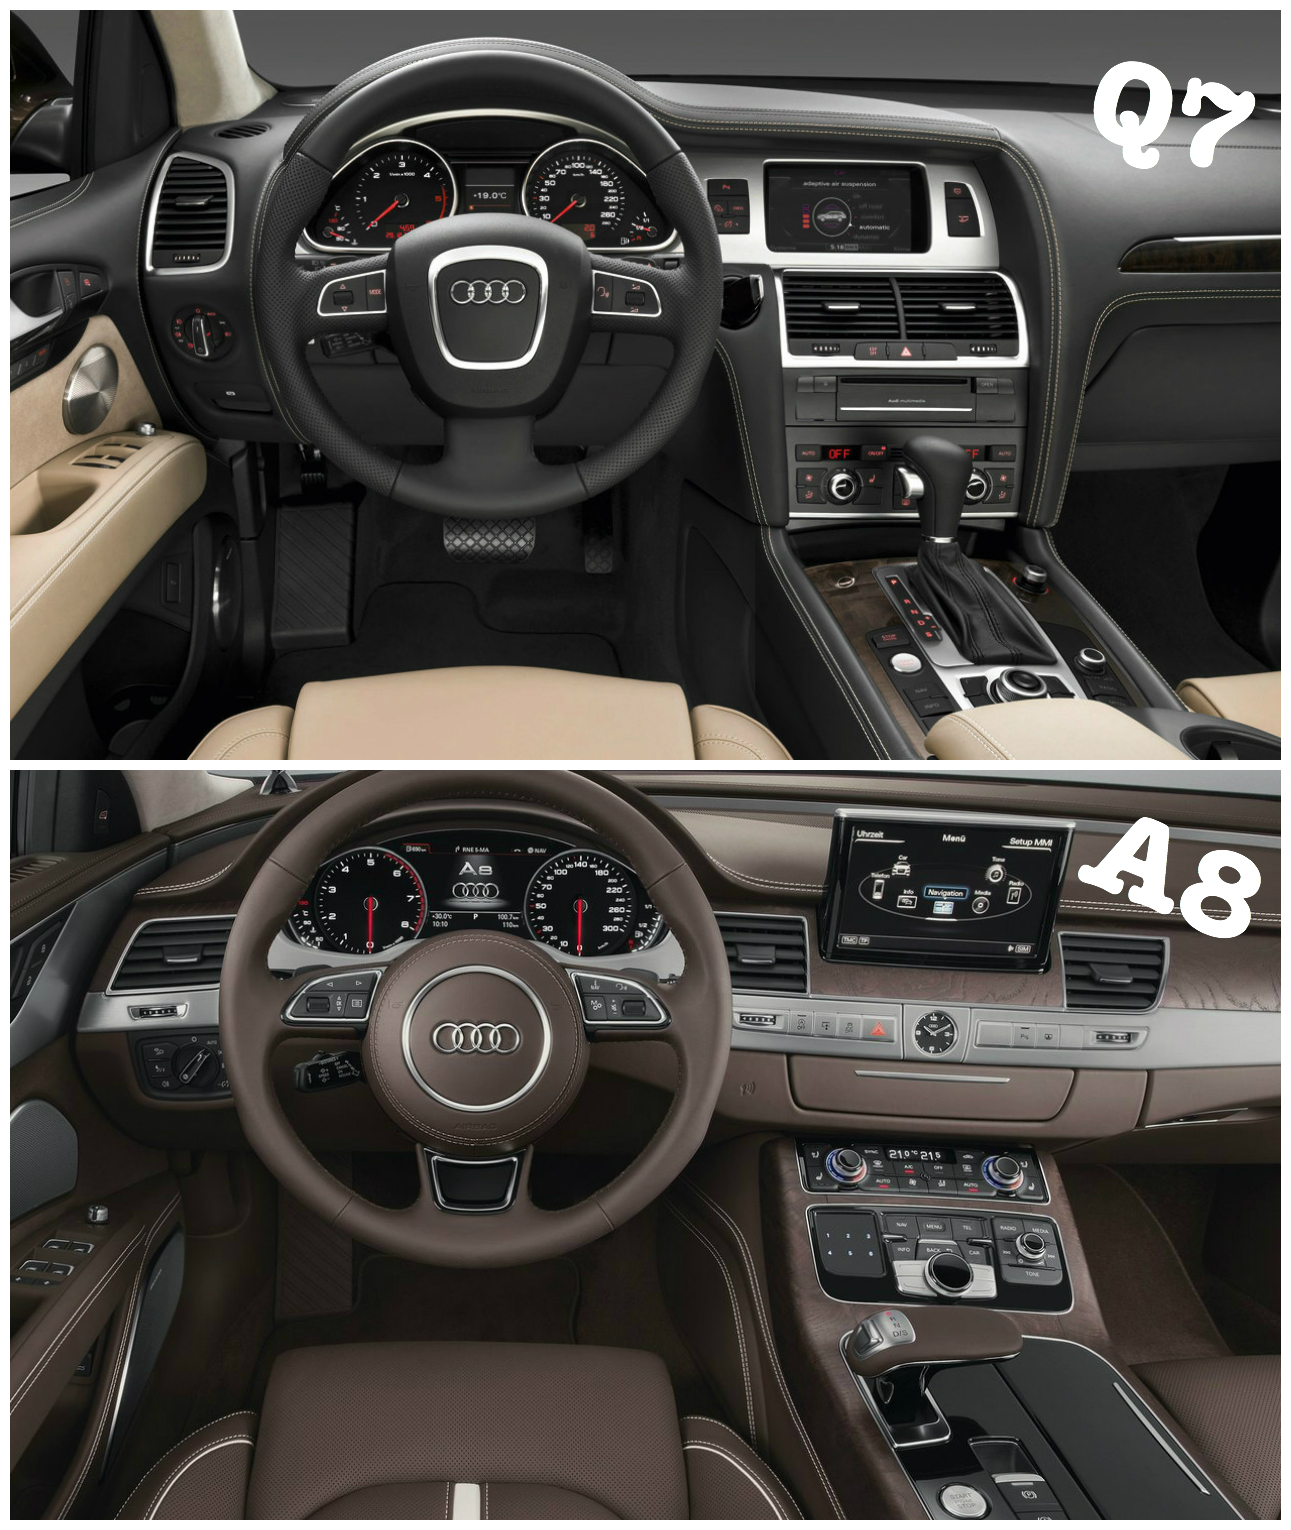 Car Interior: 2016 Audi Q7 Interior Revealed In Latest Spyshots: New MMI